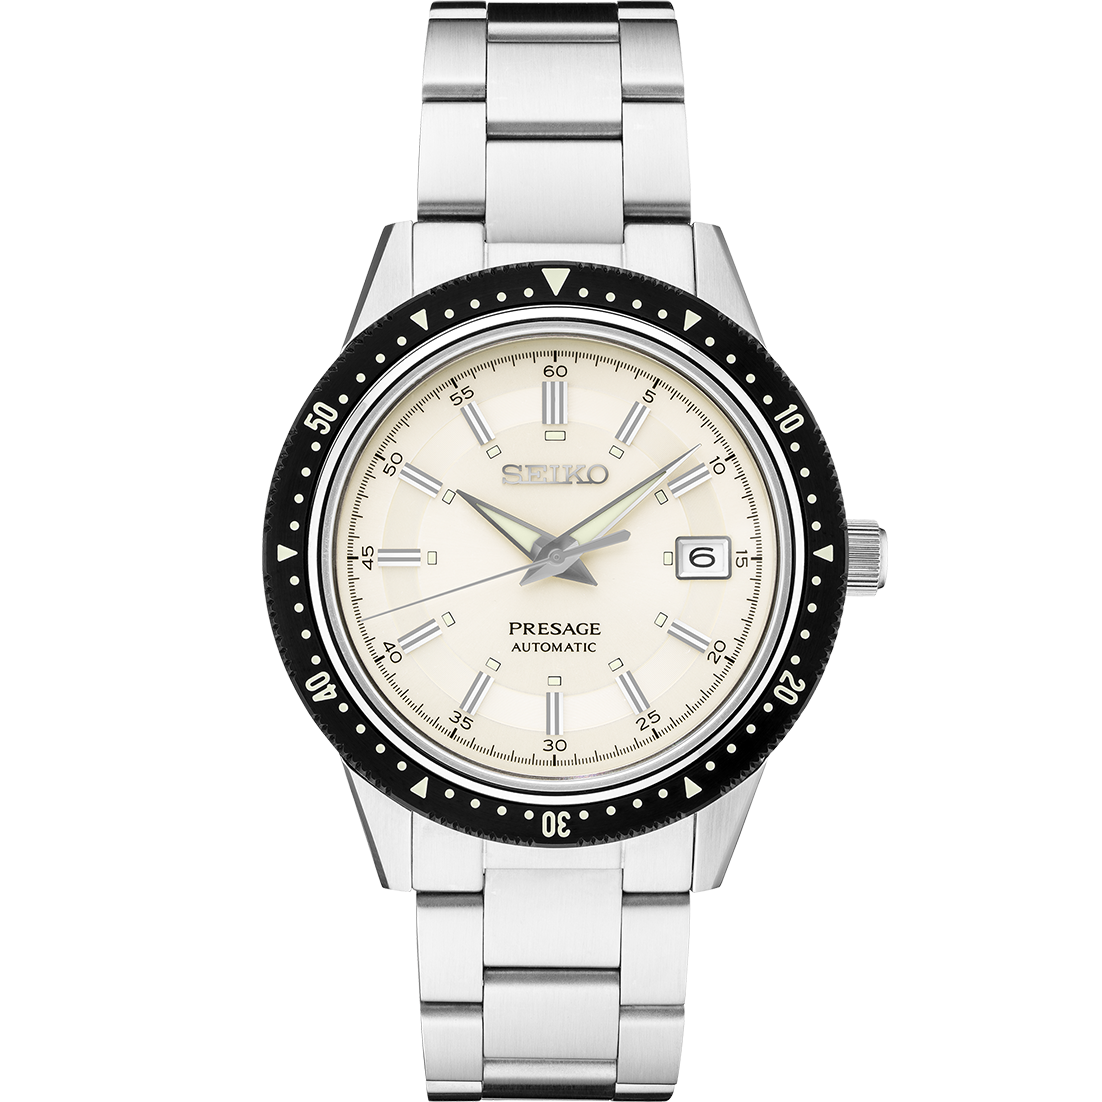 Seiko Presage Limited Edition Stainless Steel  Automatic Watch (SPB127)